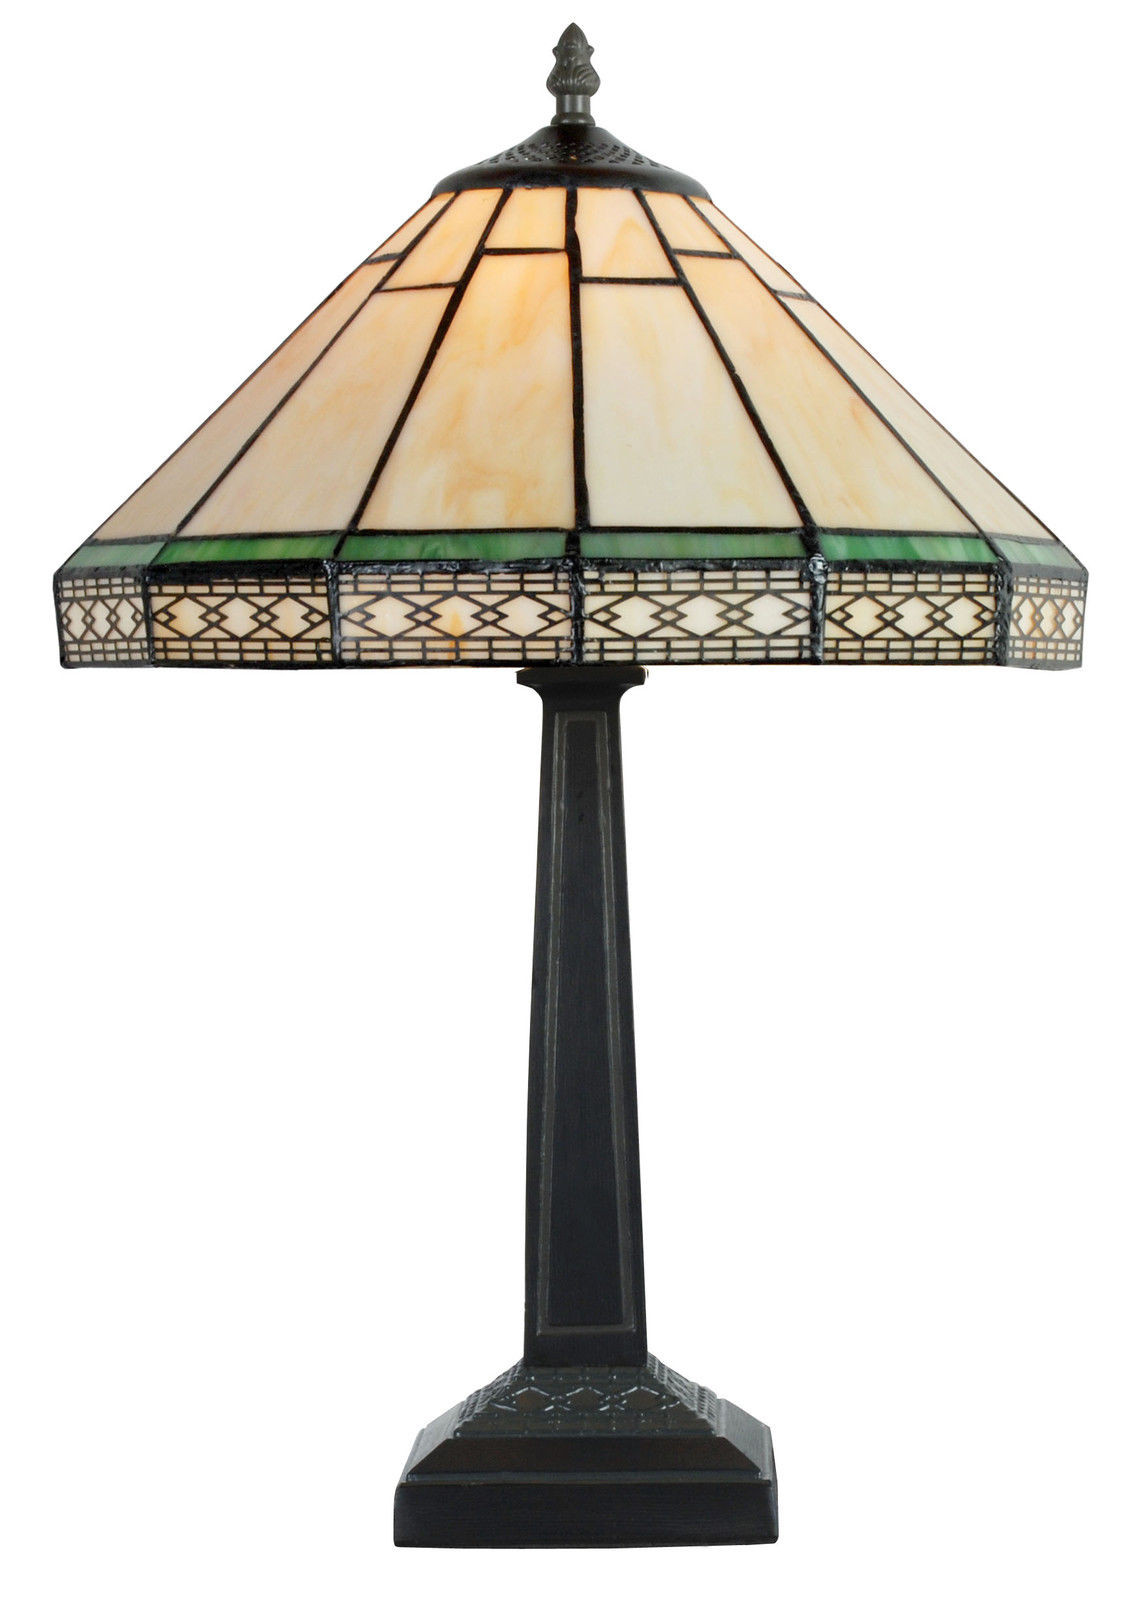 Best ideas about Stained Glass Desk Lamp . Save or Pin HIGH QUALITY TIFFANY STYLE UNIQUE STAINED GLASS DESK TABLE Now.